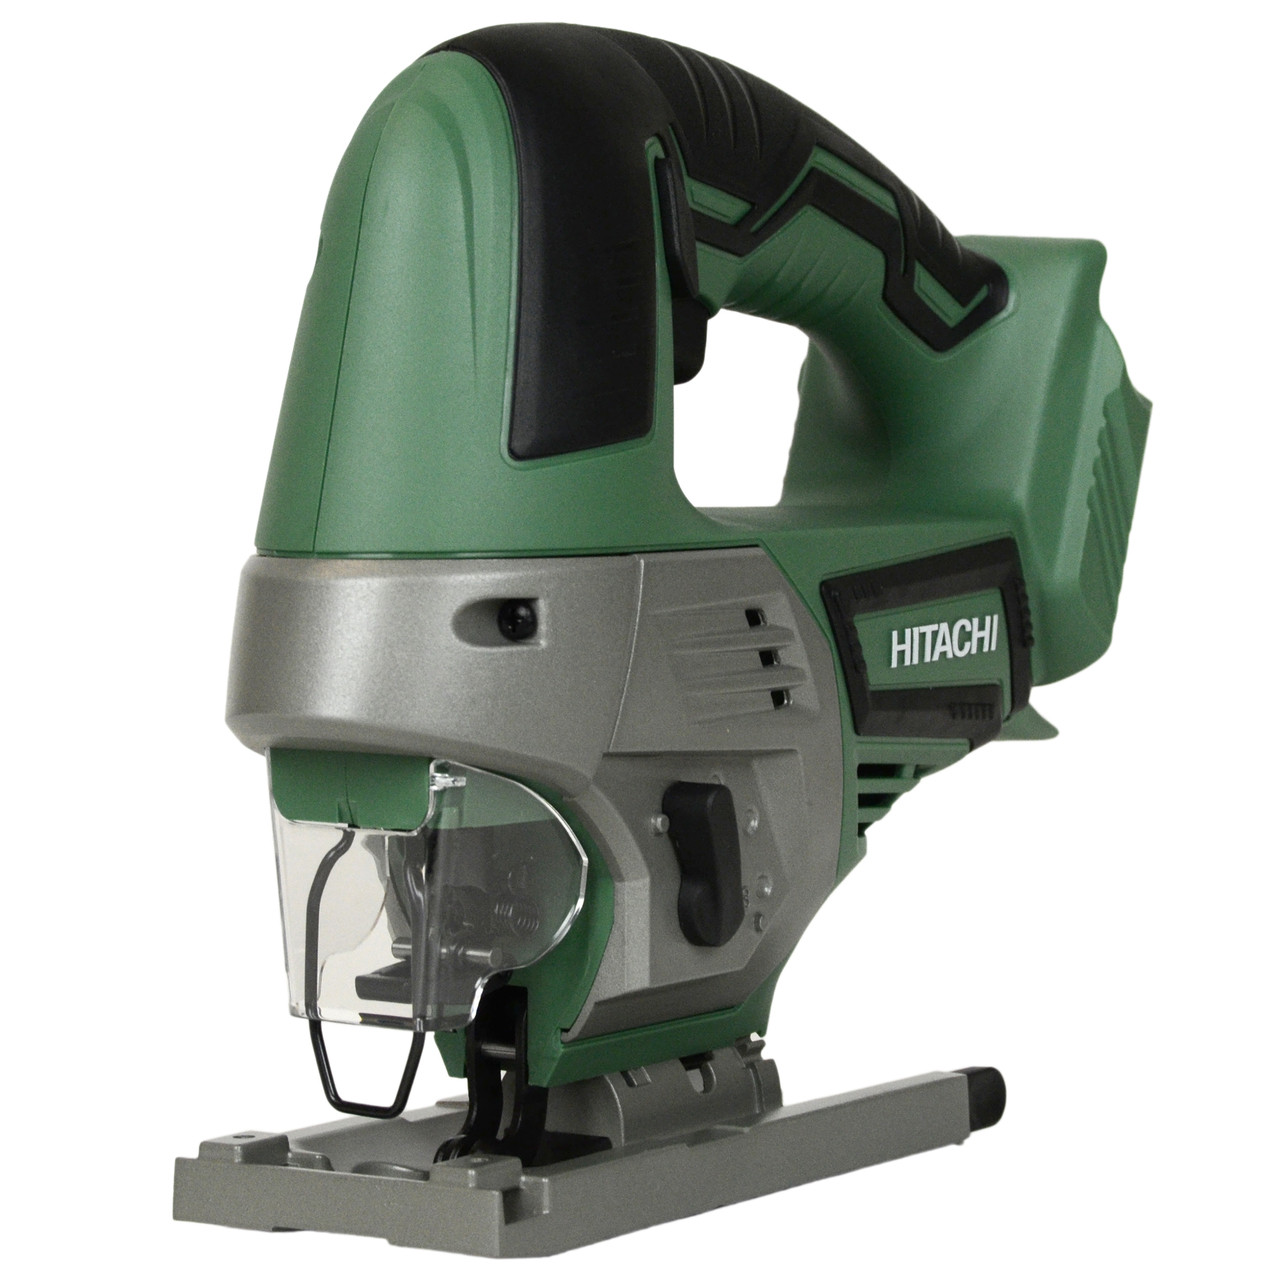 Hitachi cj18dglp4 18v jig saw tool only helton tool home hitachi cj18dglp4 18v lithium ion cordless jig saw tool only greentooth Choice Image